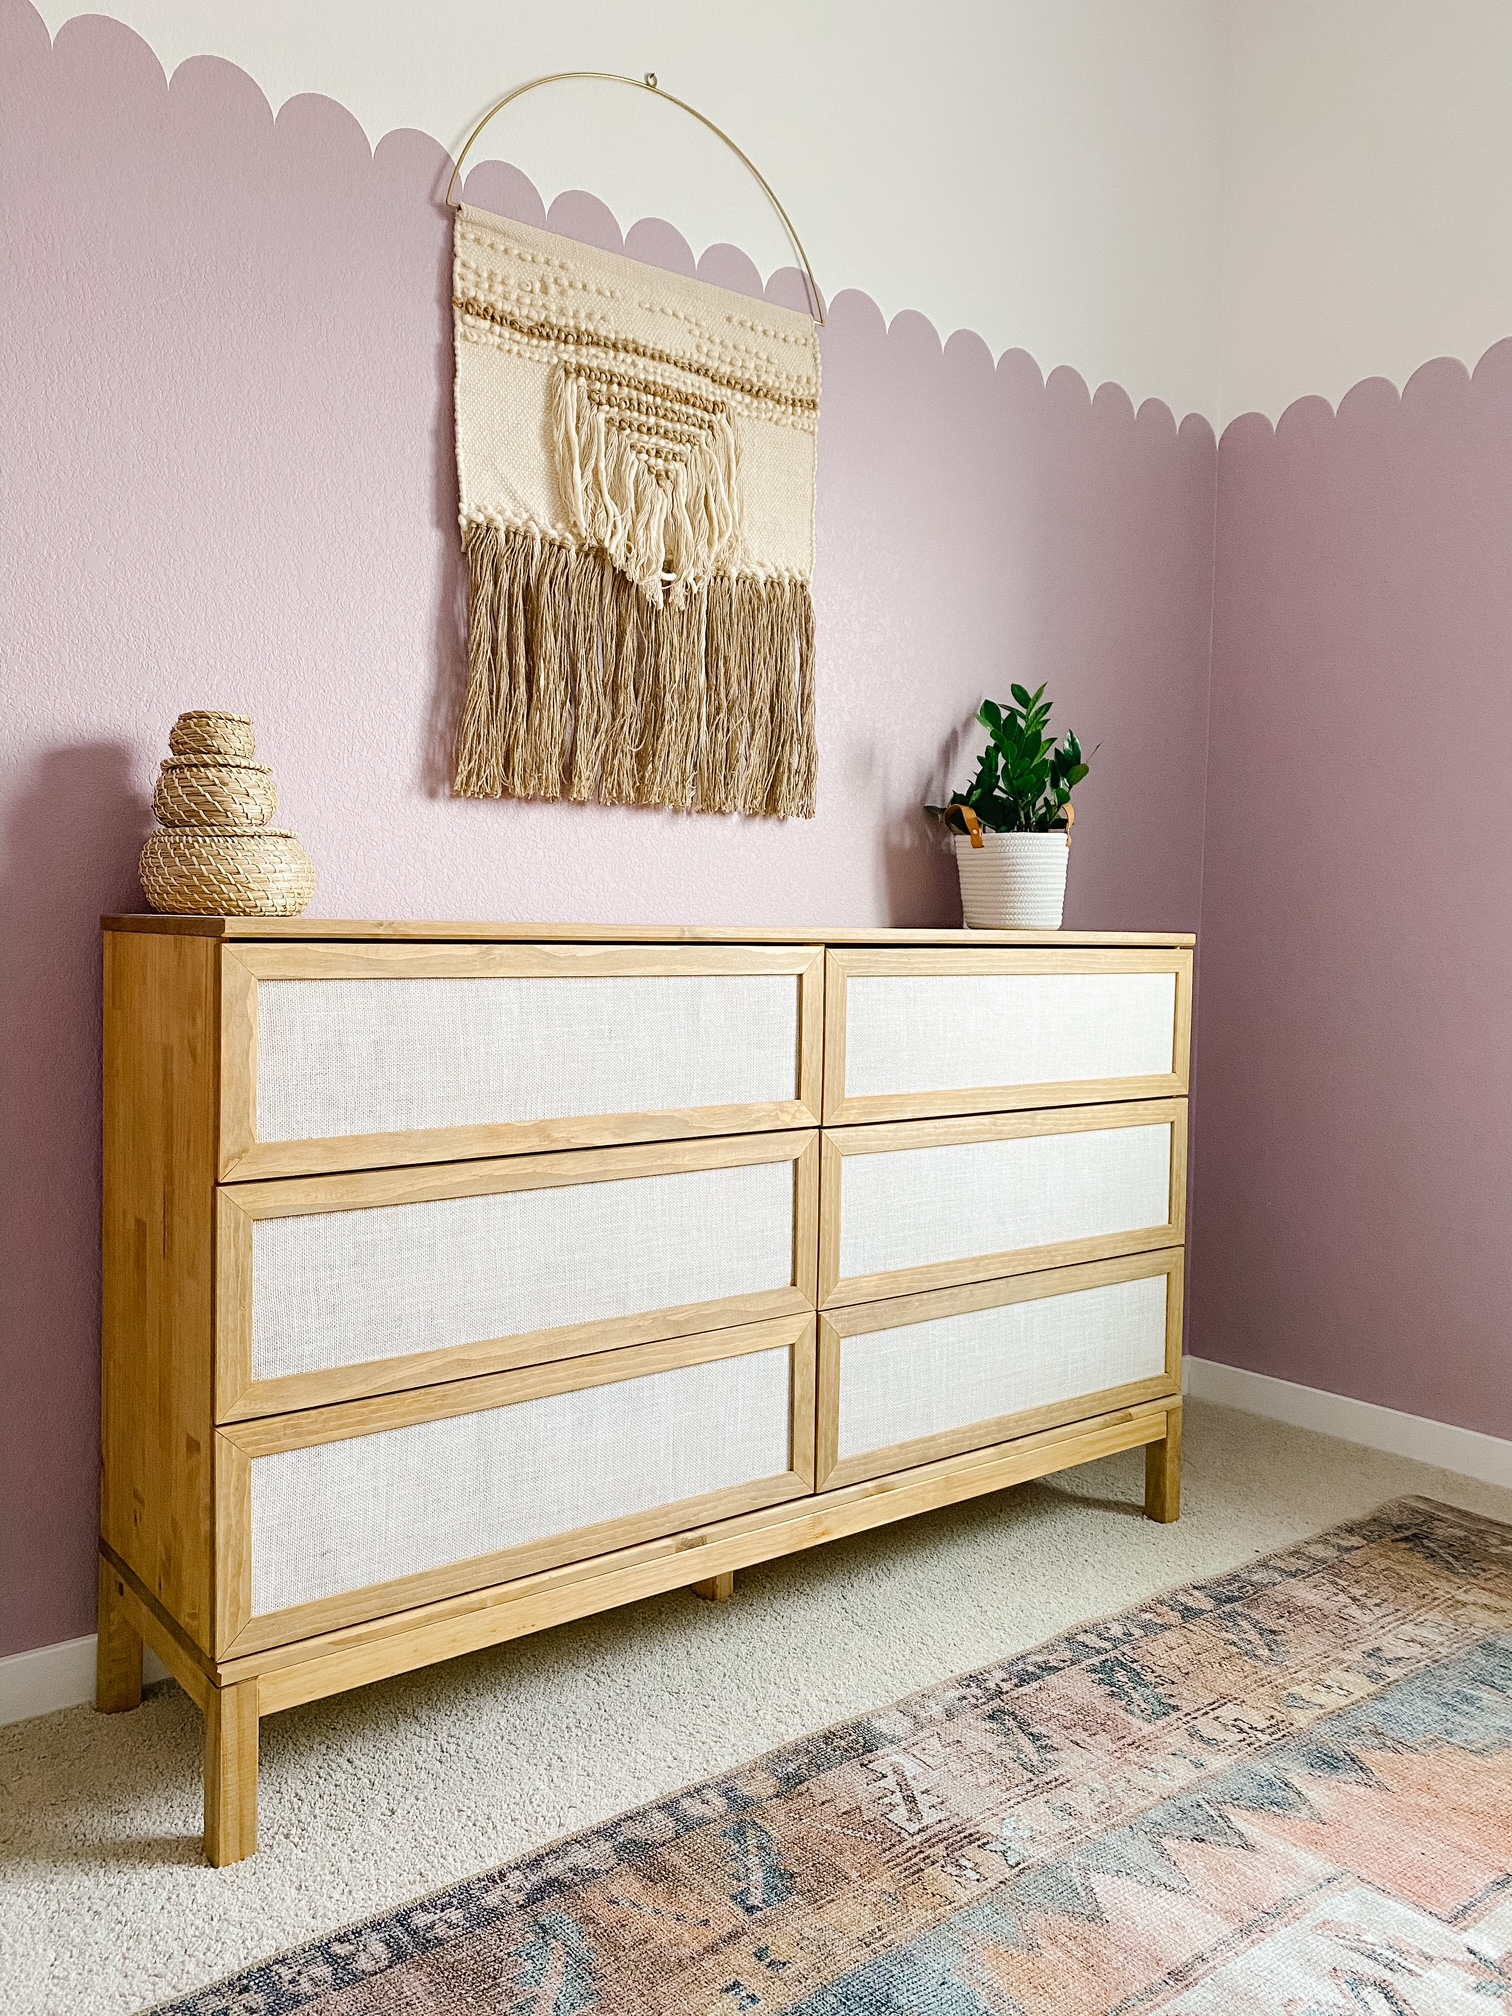 Ikea dresser hack with purple walls and rug